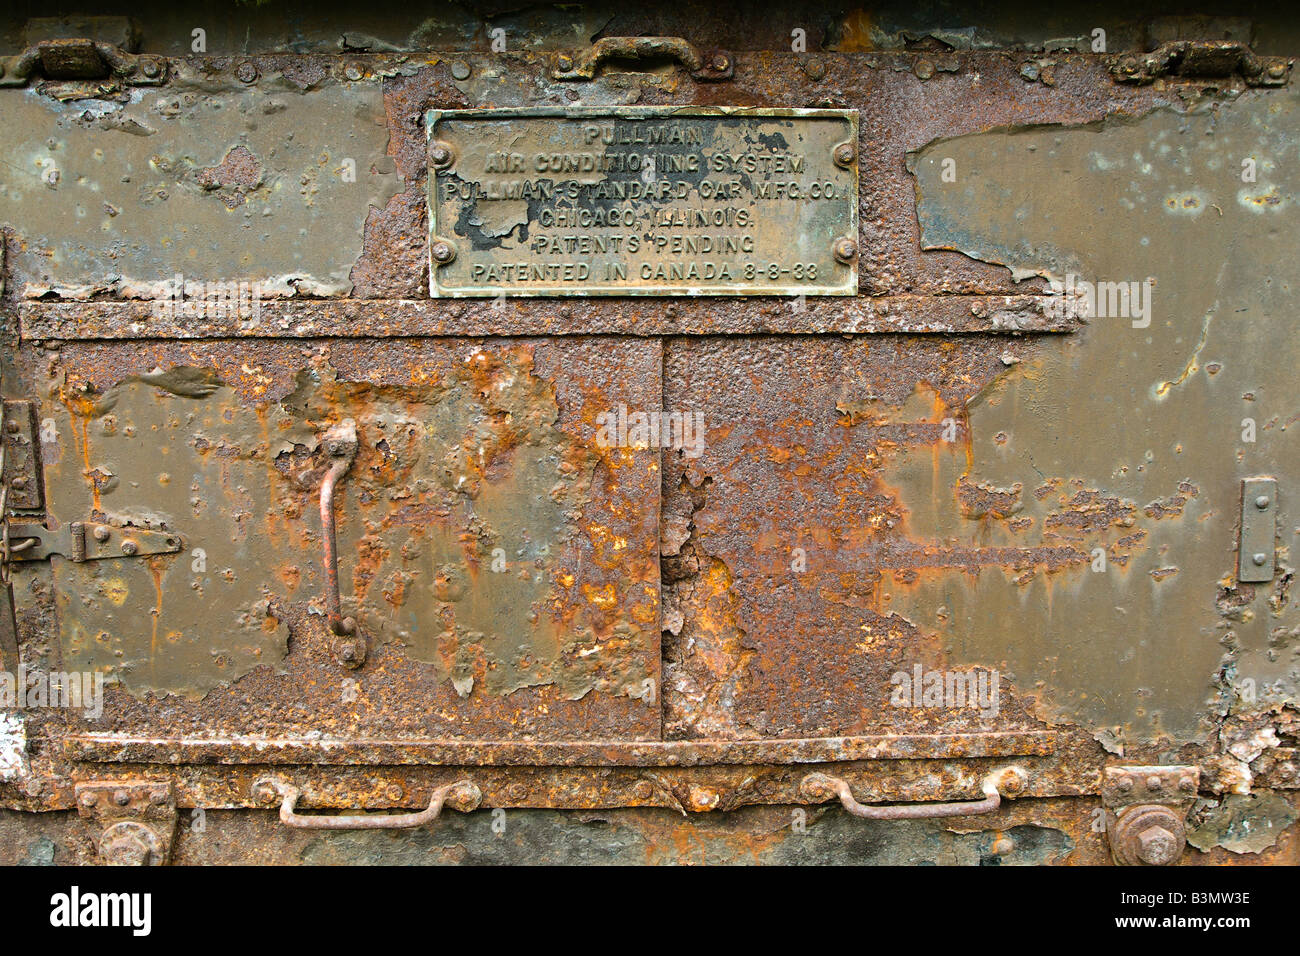 the access door to an old airconditioning unit from the 1930's and